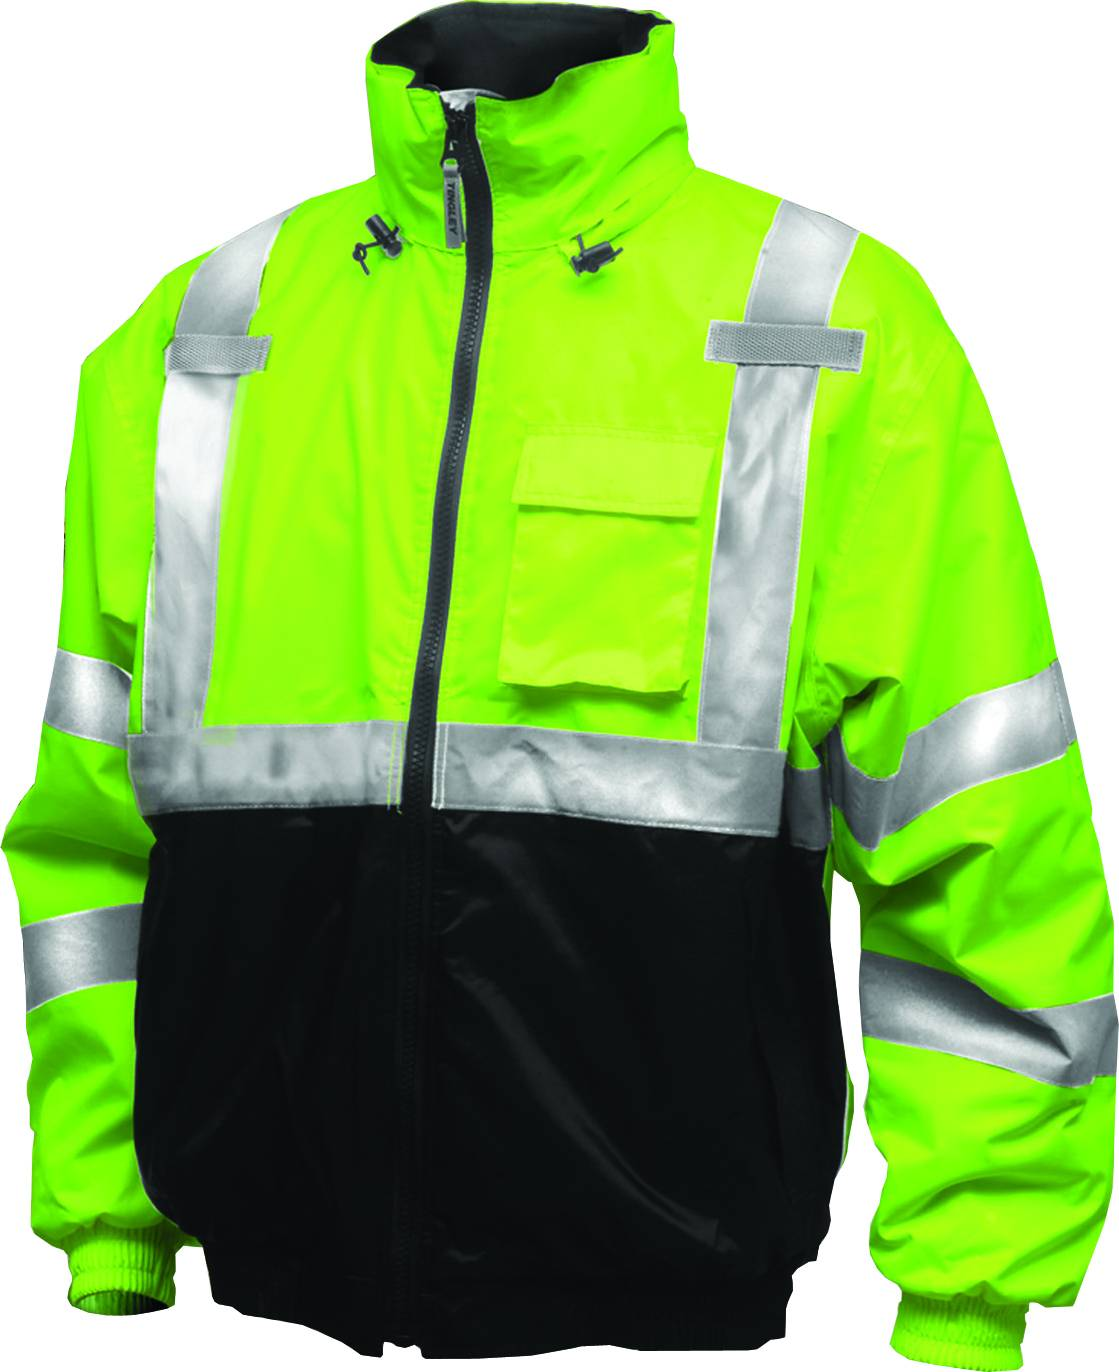 Bomber II High Visibility Waterproof Jacket